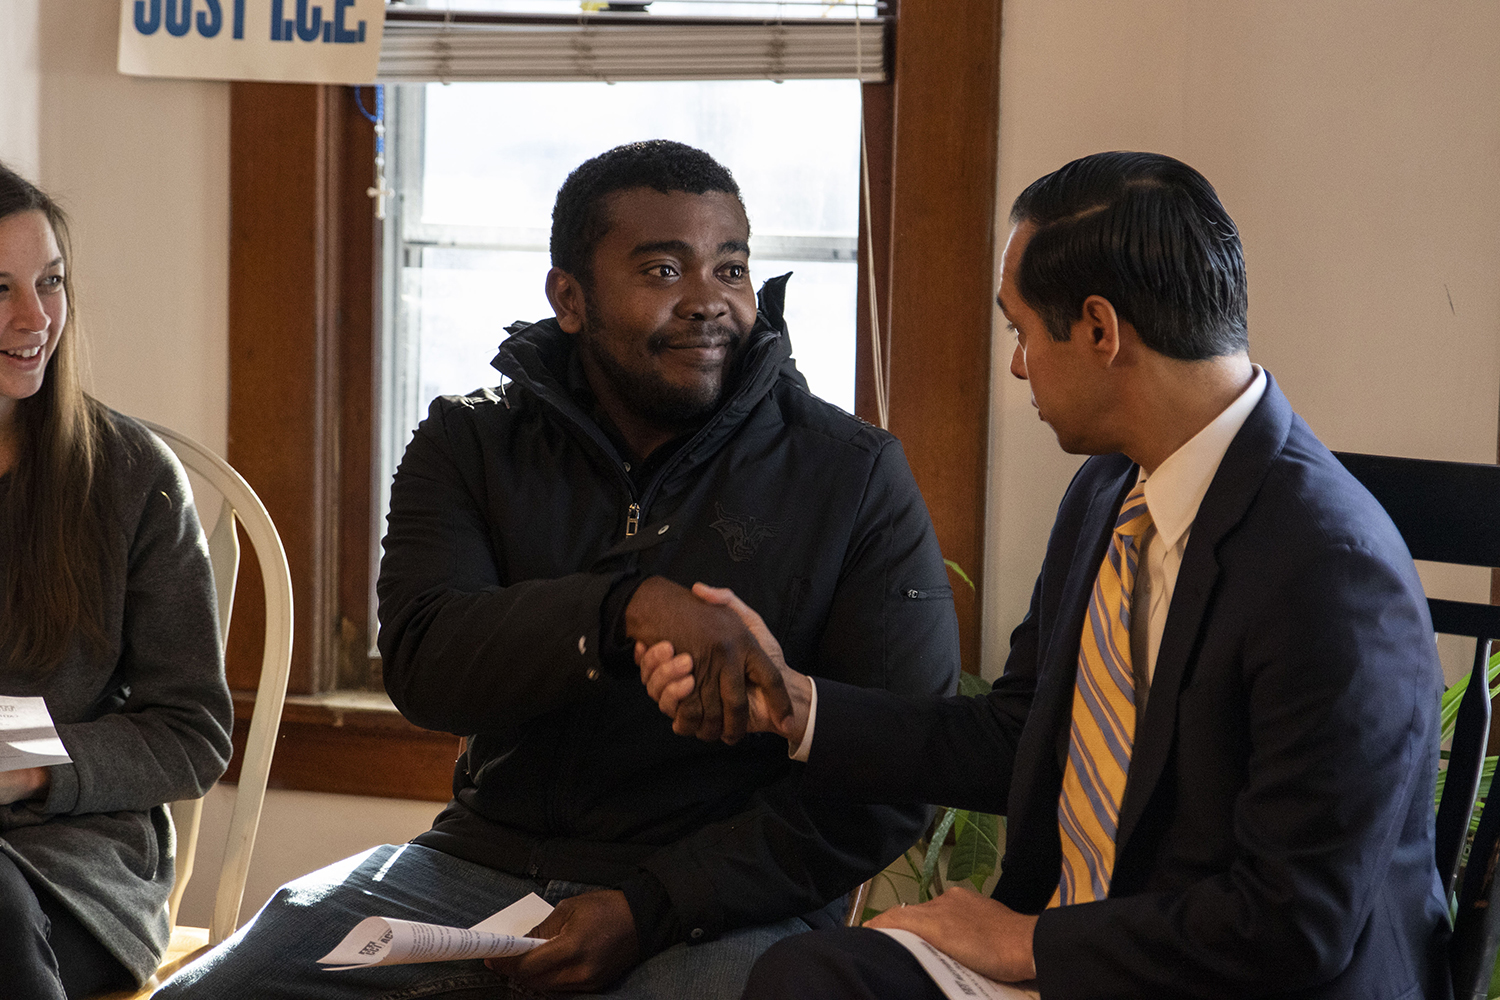 José Robinson Palacios shakes hands with Former Secretary of Housing and Urban Development Julián Castro at a meet and greet with the Catholic Worker House in Iowa City on Tuesday, Nov. 12, 2019. Castro met with families of immigrants to listen to their stories and discuss ICE. Palacios is a Honduran refugee.